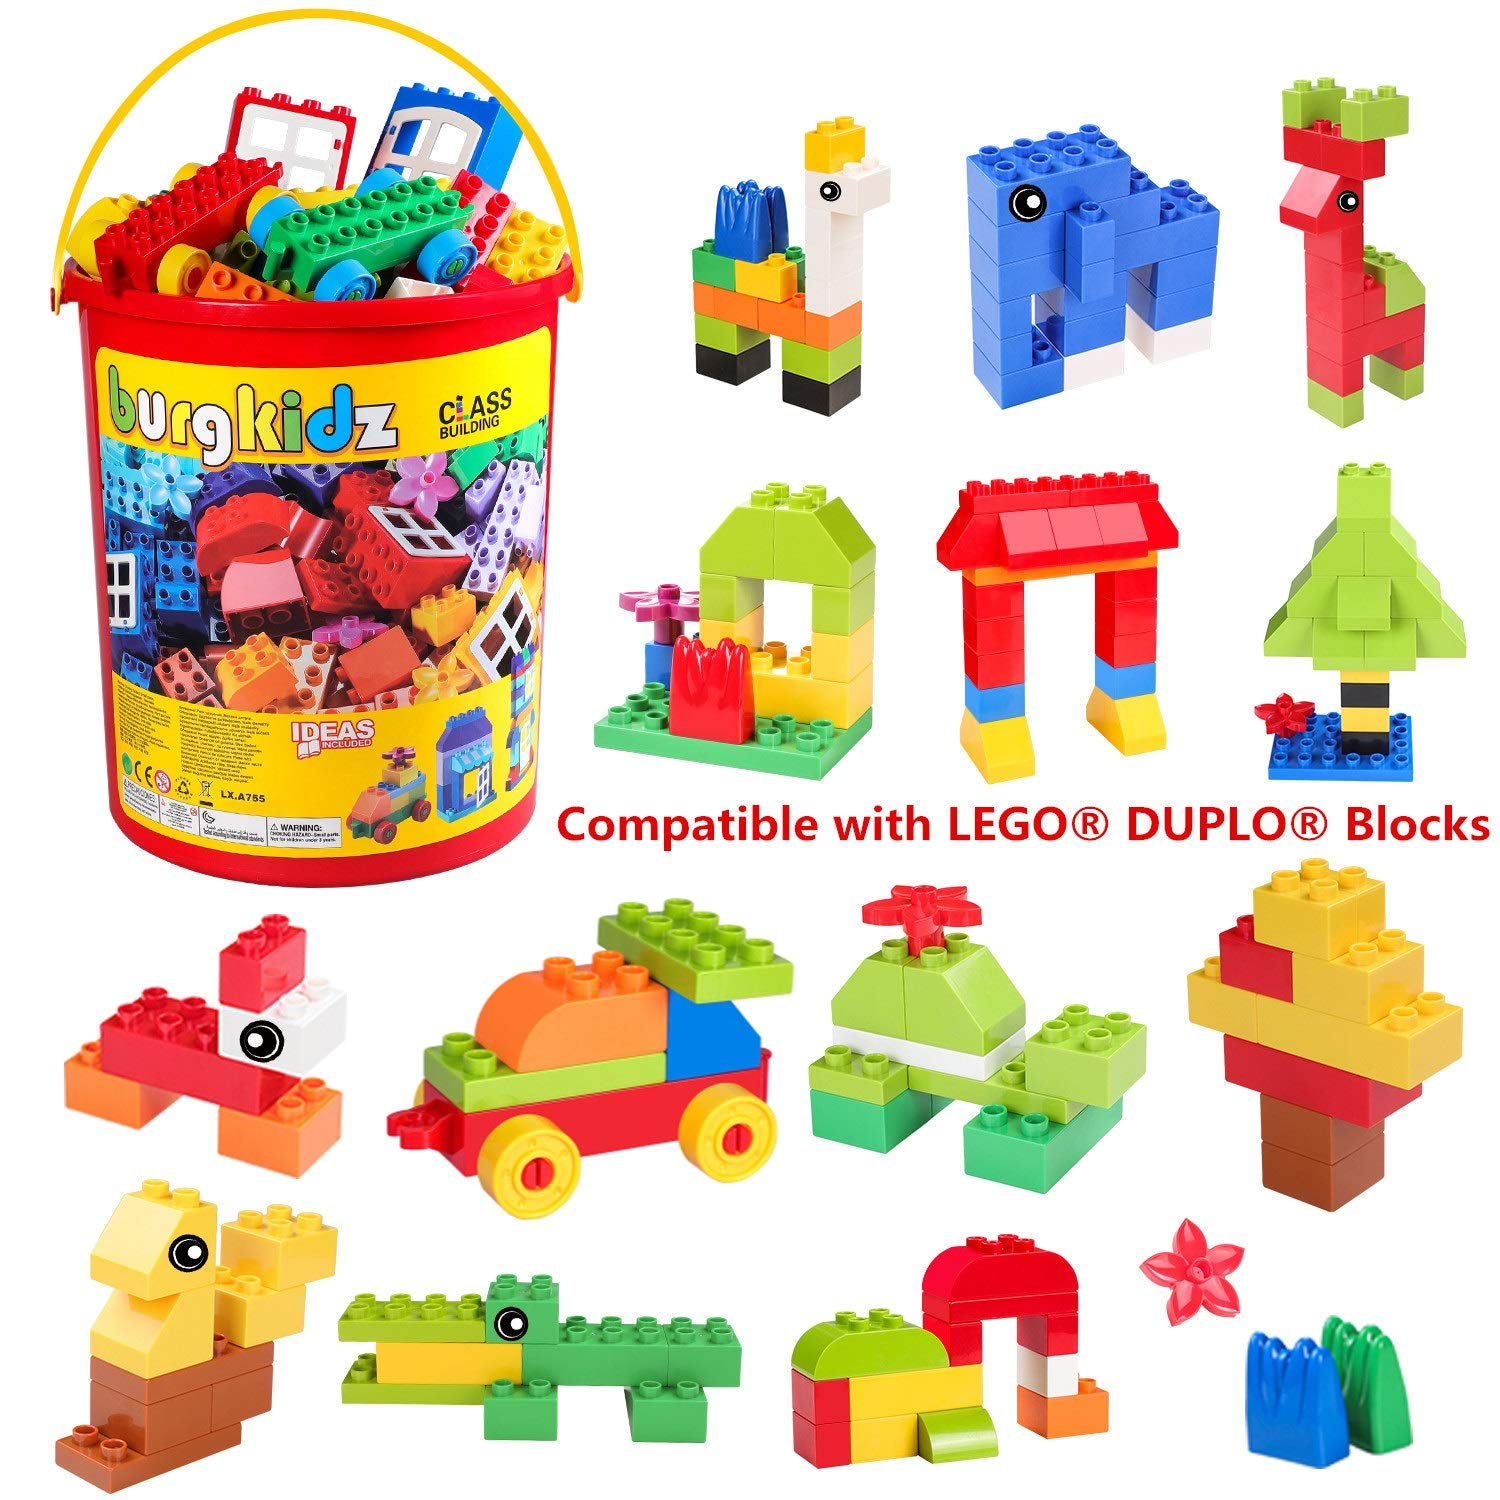 burgkidz Big Building Block Sets - 214 Pieces Toddler Educational Toy Classic Large Sizes Building Blocks Bricks - 13 Fun Shapes and Storage Bucket - Compatible with All Major Brands by burgkidz (Image #2)